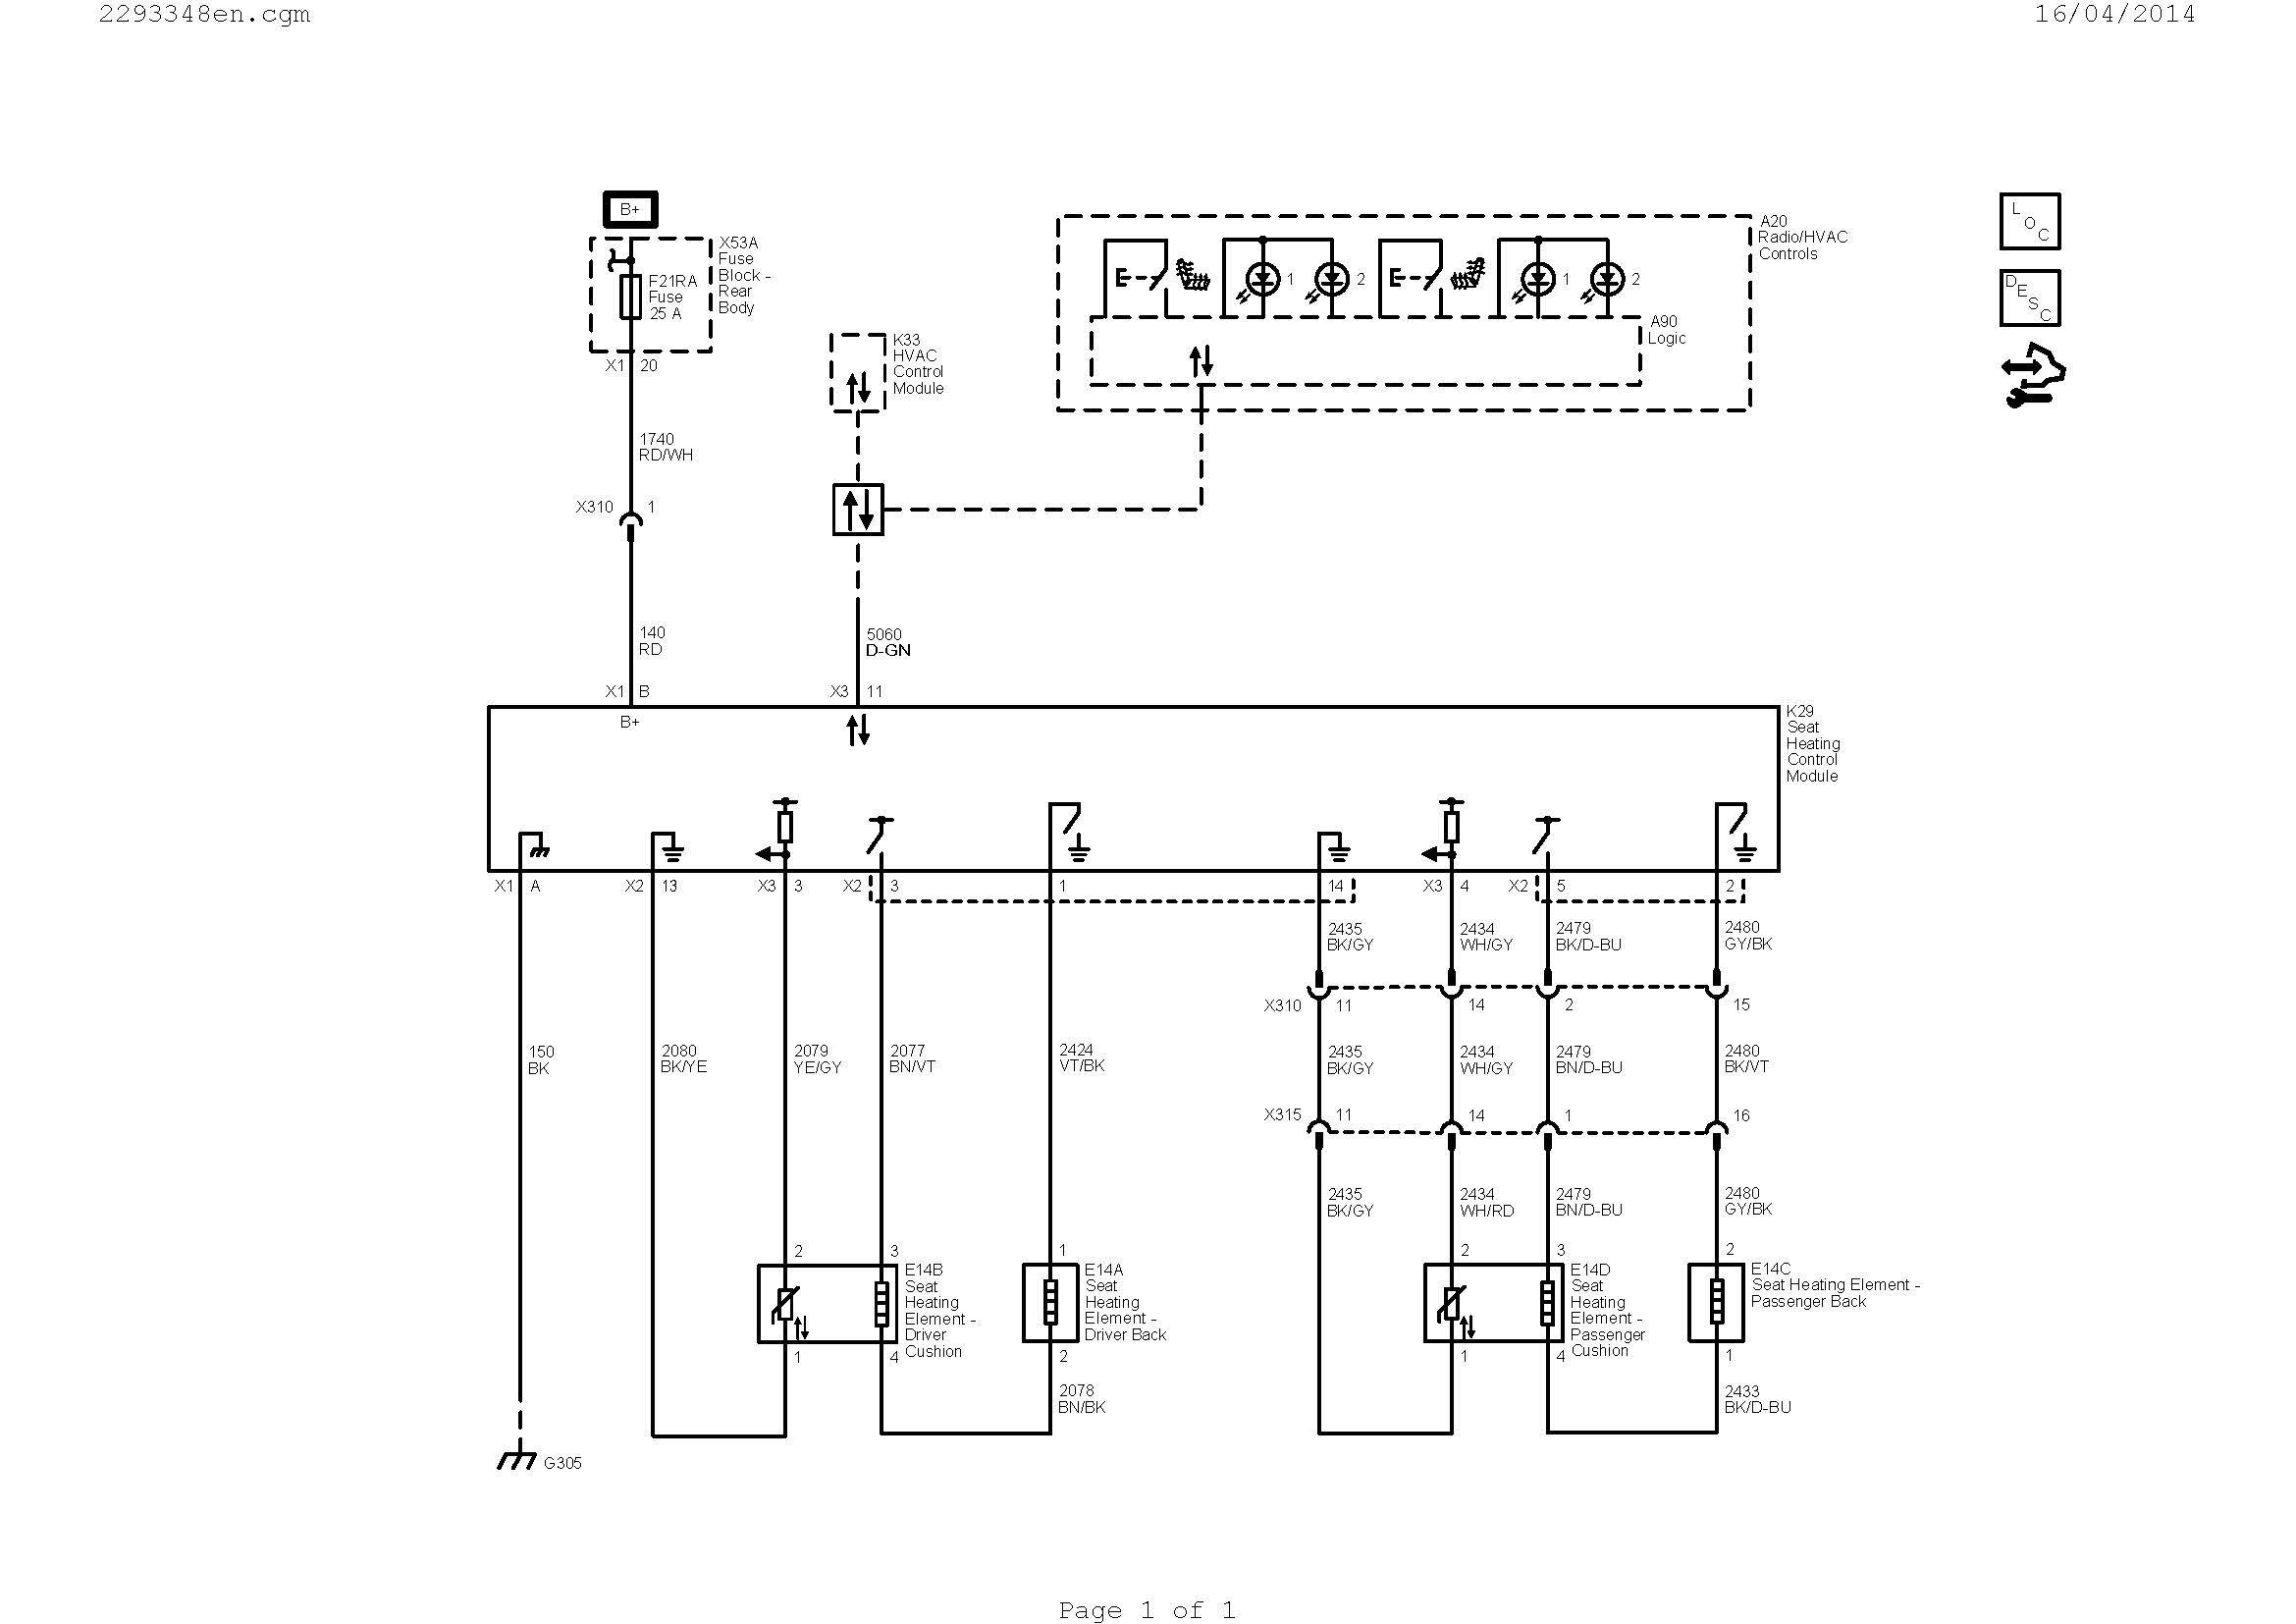 Wiring Diagram For The Nest Thermostat Sample - S Plan Wiring Diagram Nest